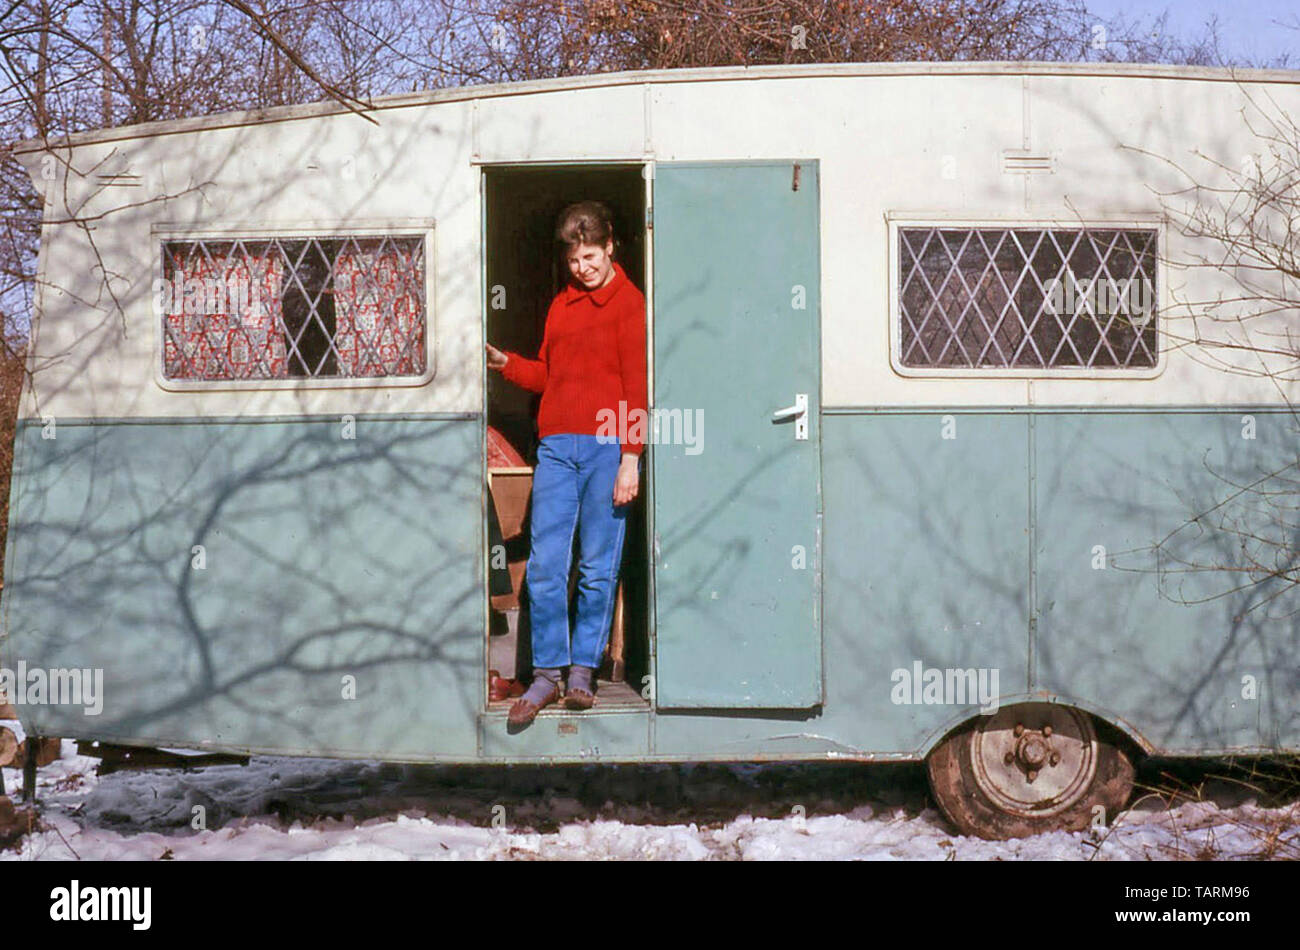 Archival 1960s just married young woman standing in doorway of dilapidated old caravan snow covered building site first marital home 60s England UK Stock Photo